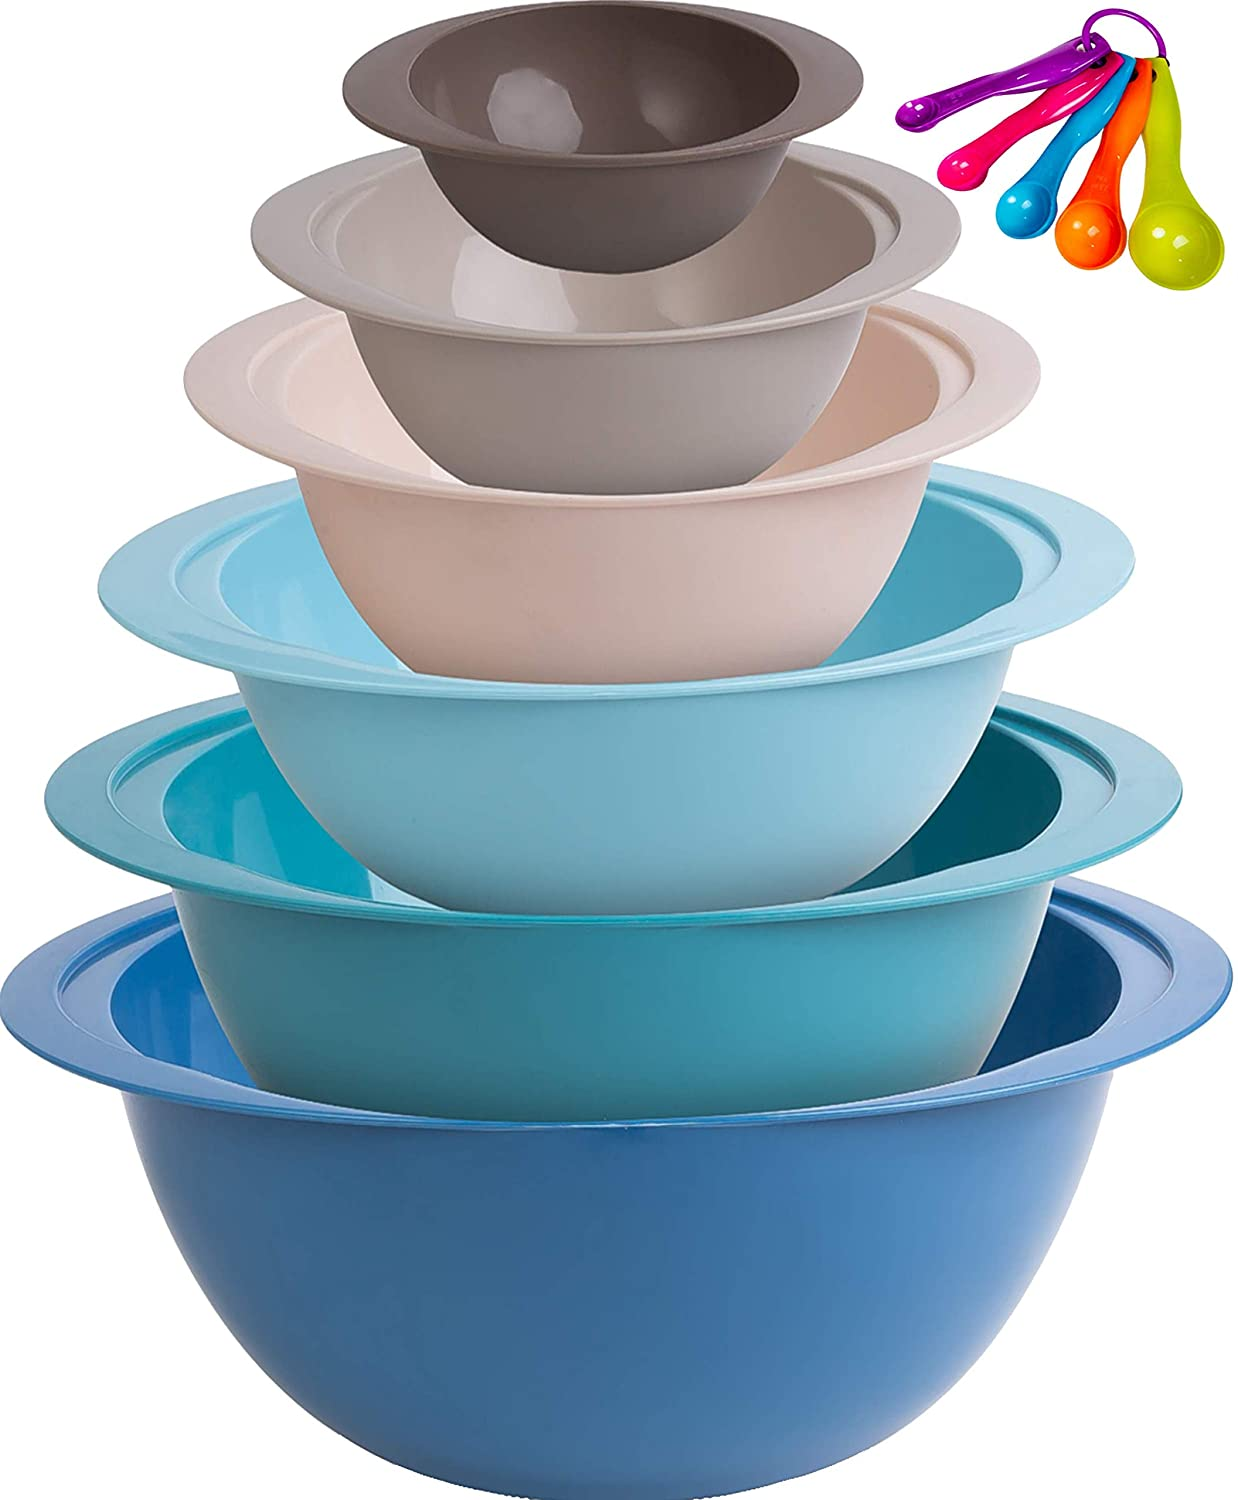 Plastic Mixing Bowl Set – 6 Stackable Nesting Bowls + 5 Measuring Spoons for Cooking & Baking – Small and Large Plastic Bowl Cooking Supplies for Serving, Popcorn, Salad, Meal Prep, More by Monka